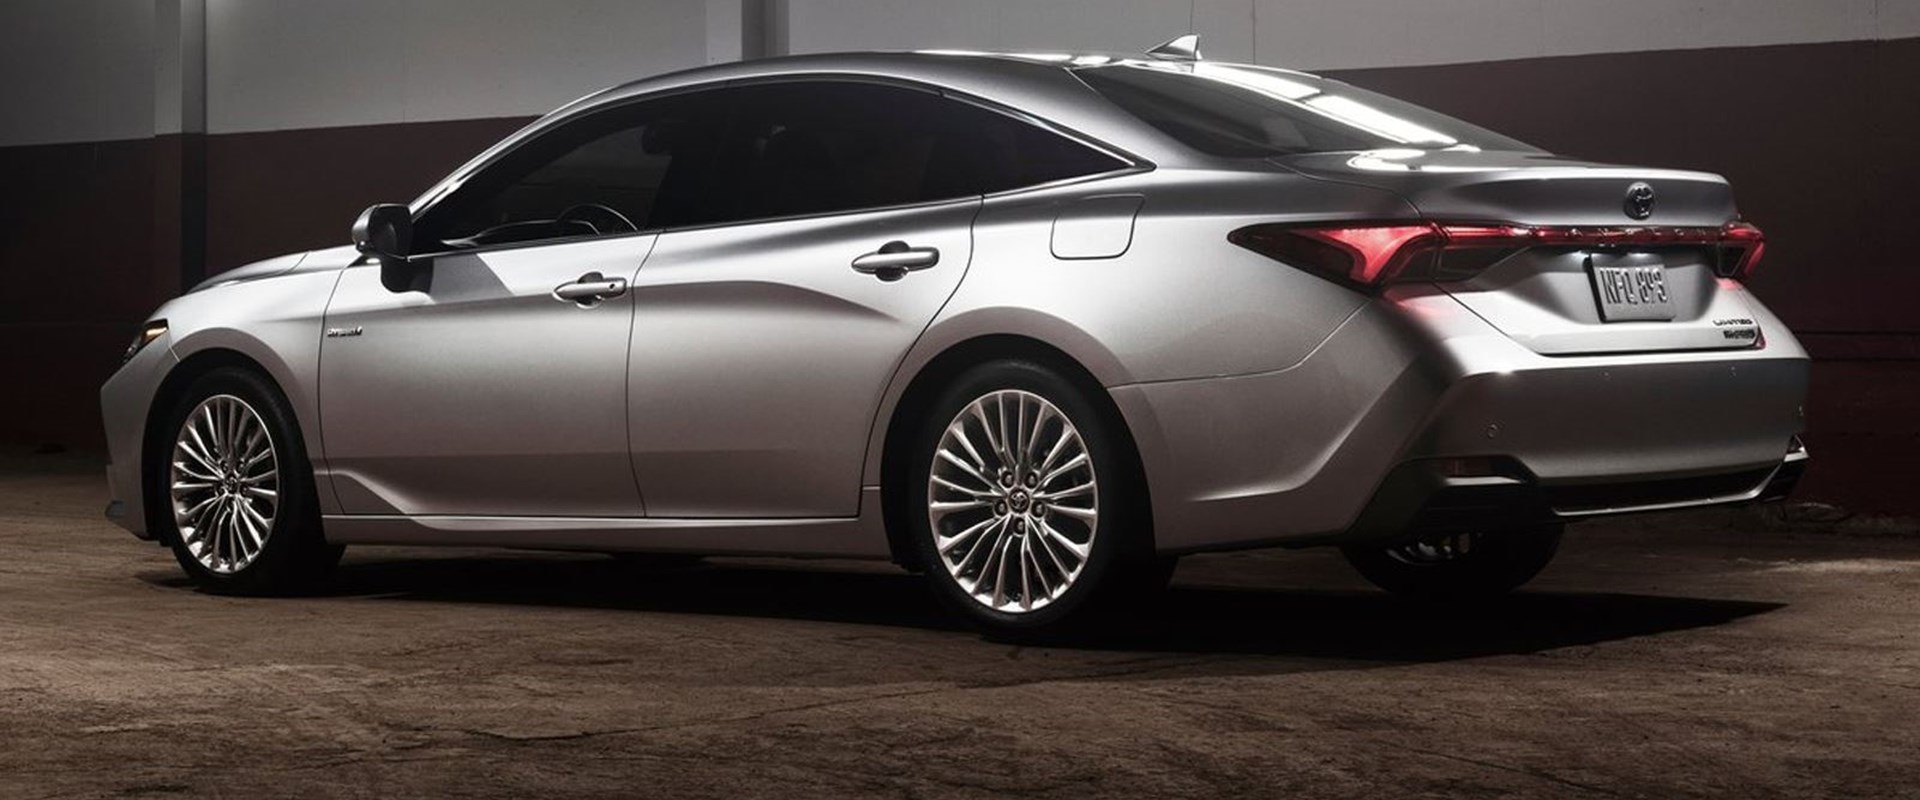 limited hybridlimited hybrid avalon at fayetteville detail new autopark toyota iid